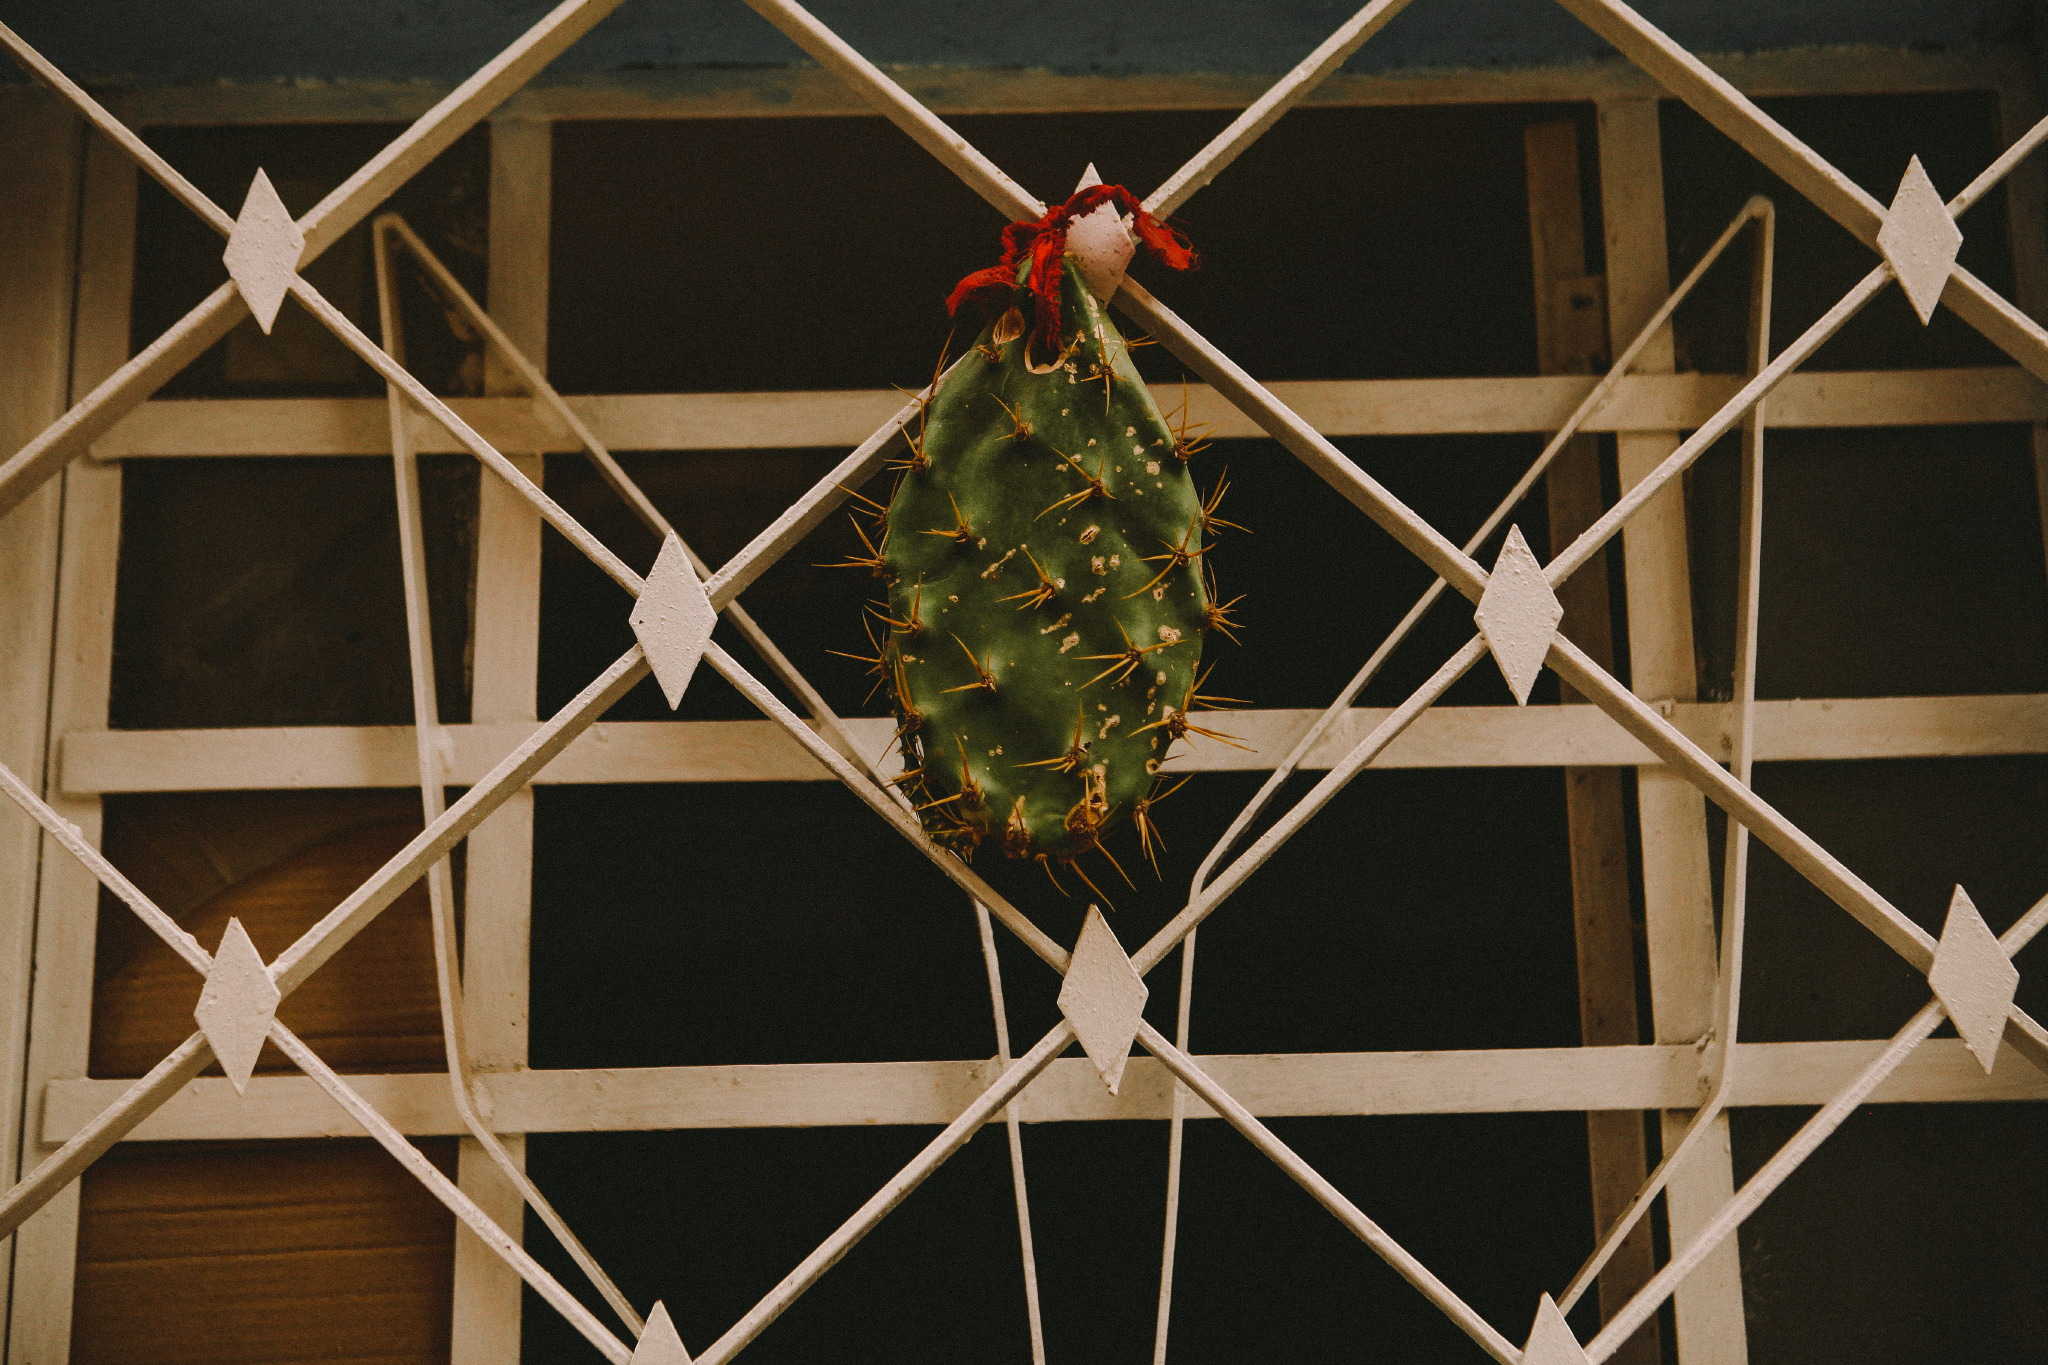 san diego wedding   photographer | cactus hanging from window grate